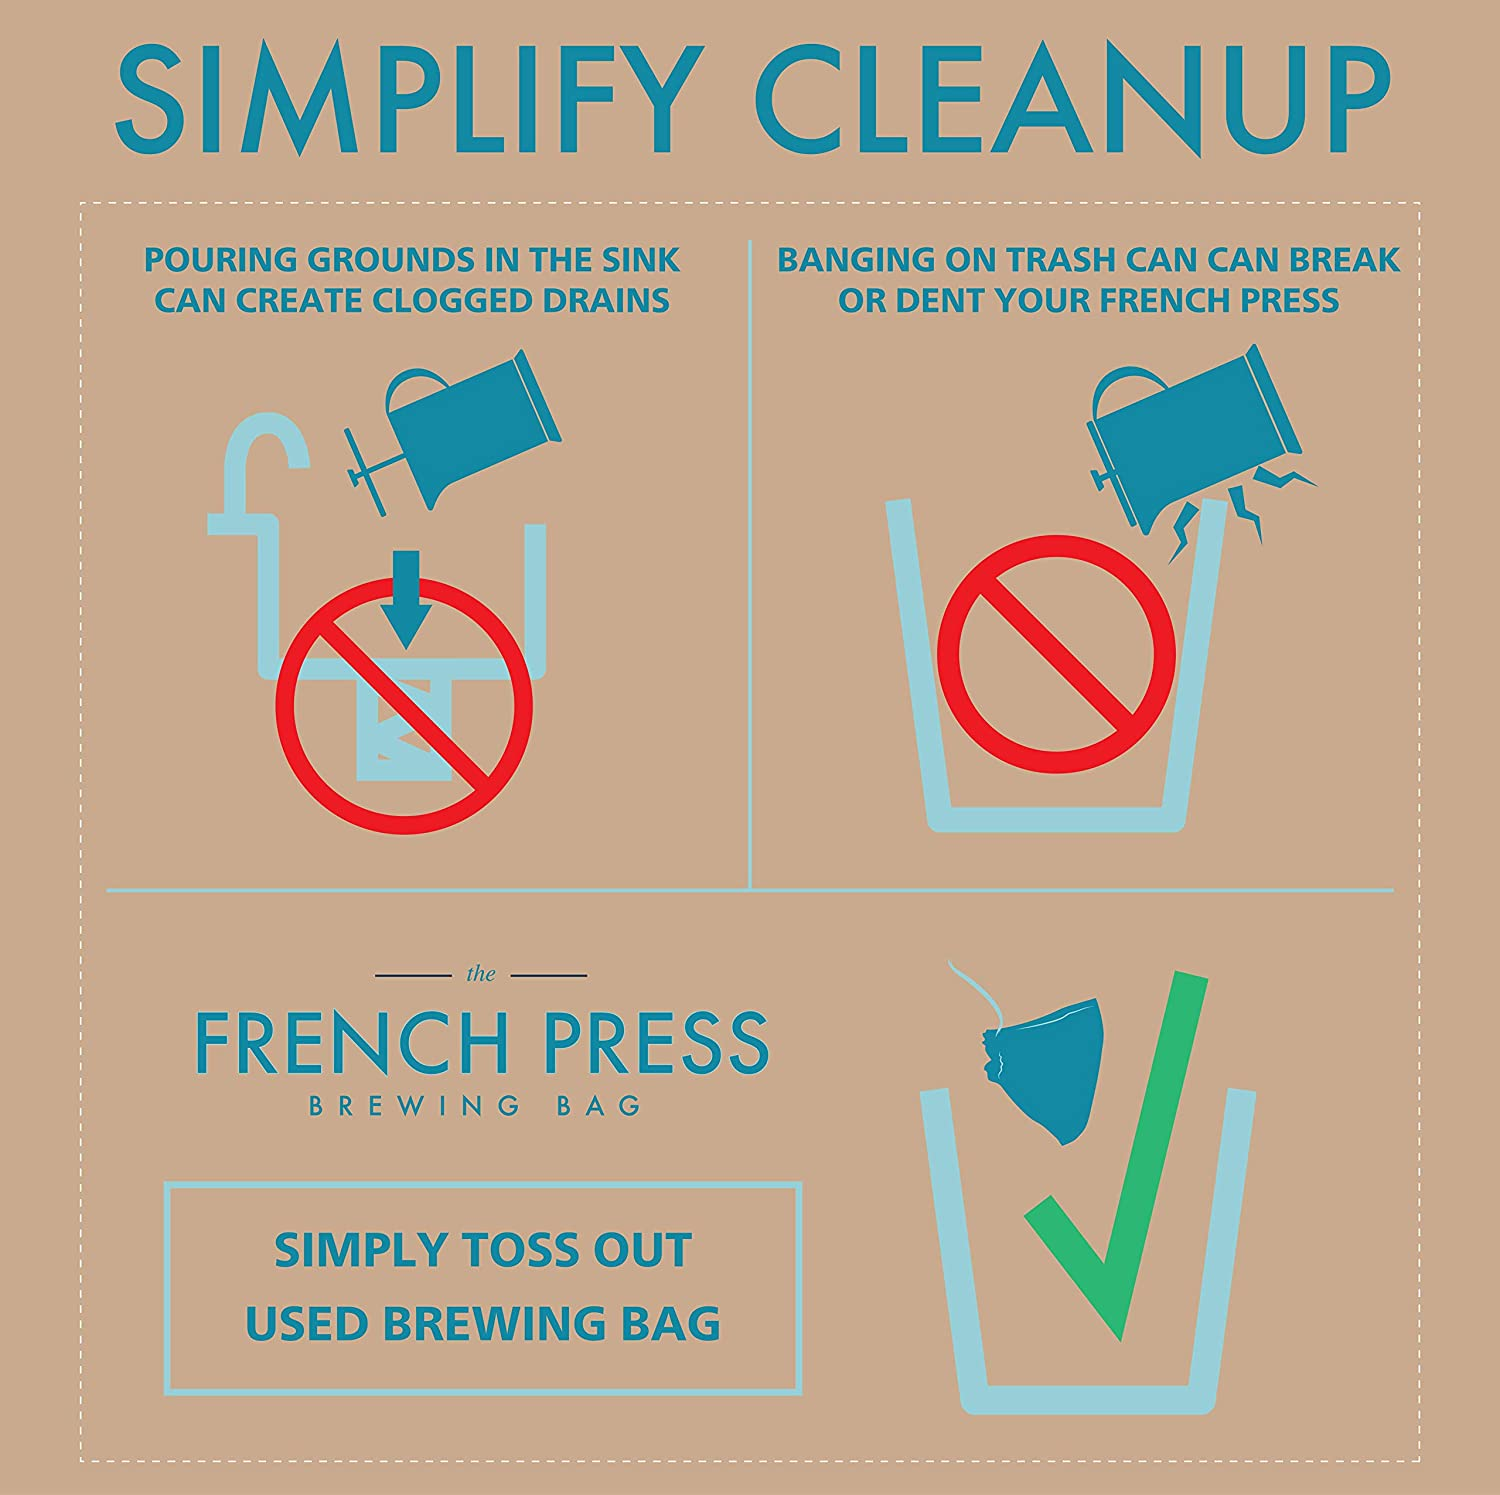 """The Original French Press Brewing Bags - 50 Easy Fill Fine Mesh Disposable Coffee Filters For Your French Press Coffee Maker - Perfect for Mason Jar Cold Brew, Beer Hops, Tea, Spice Sacks 6""""x4"""" White"""